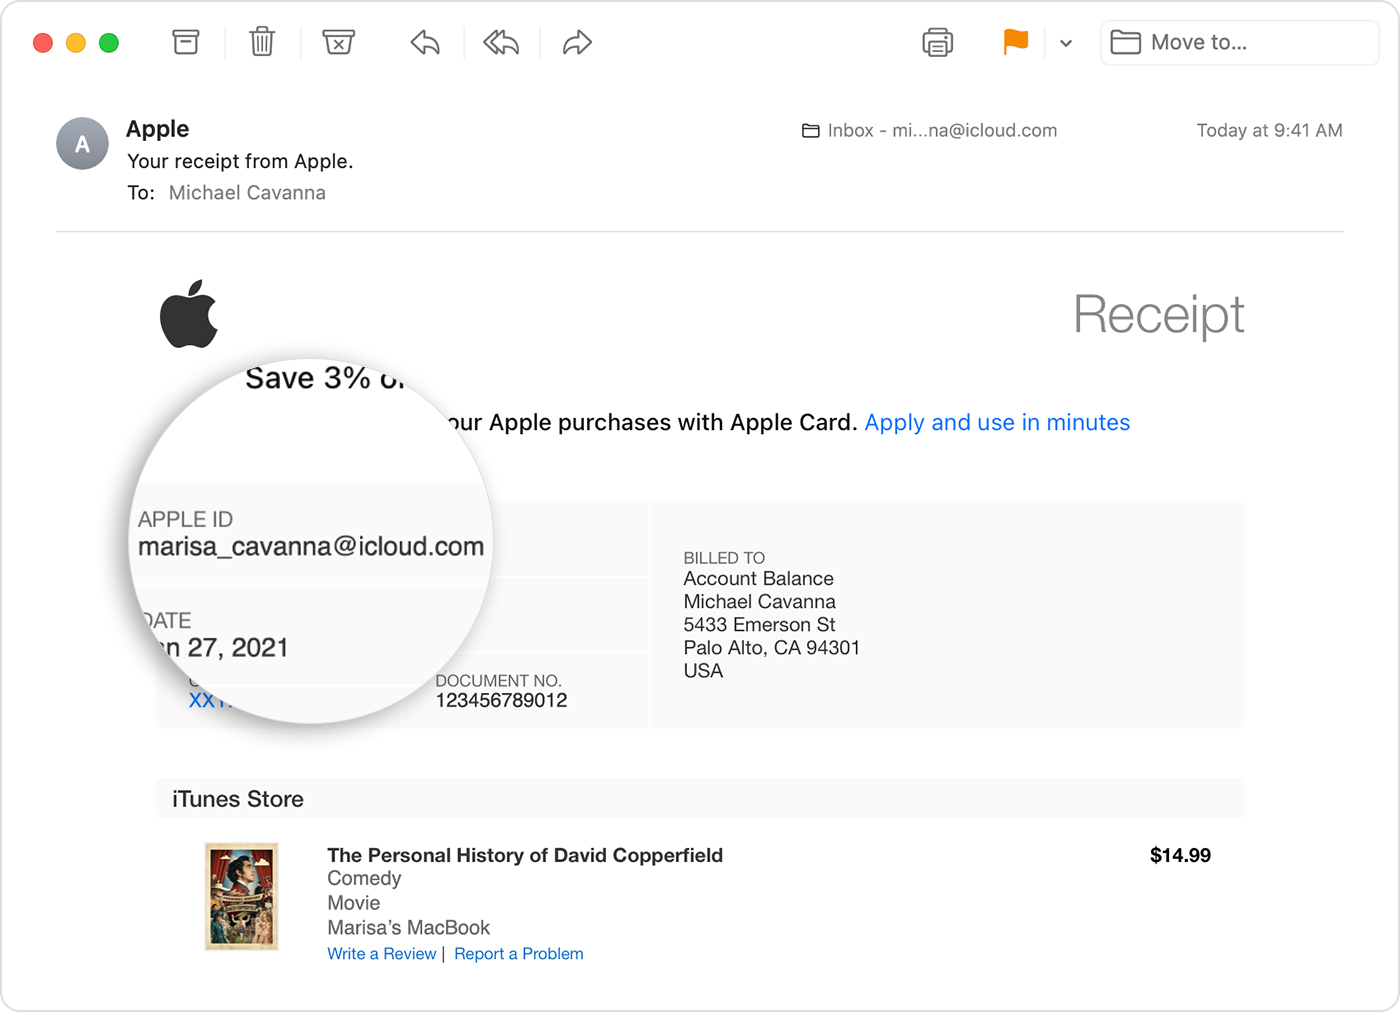 Email showing receipt from Apple that includes the Apple ID of the person who made the purchase.